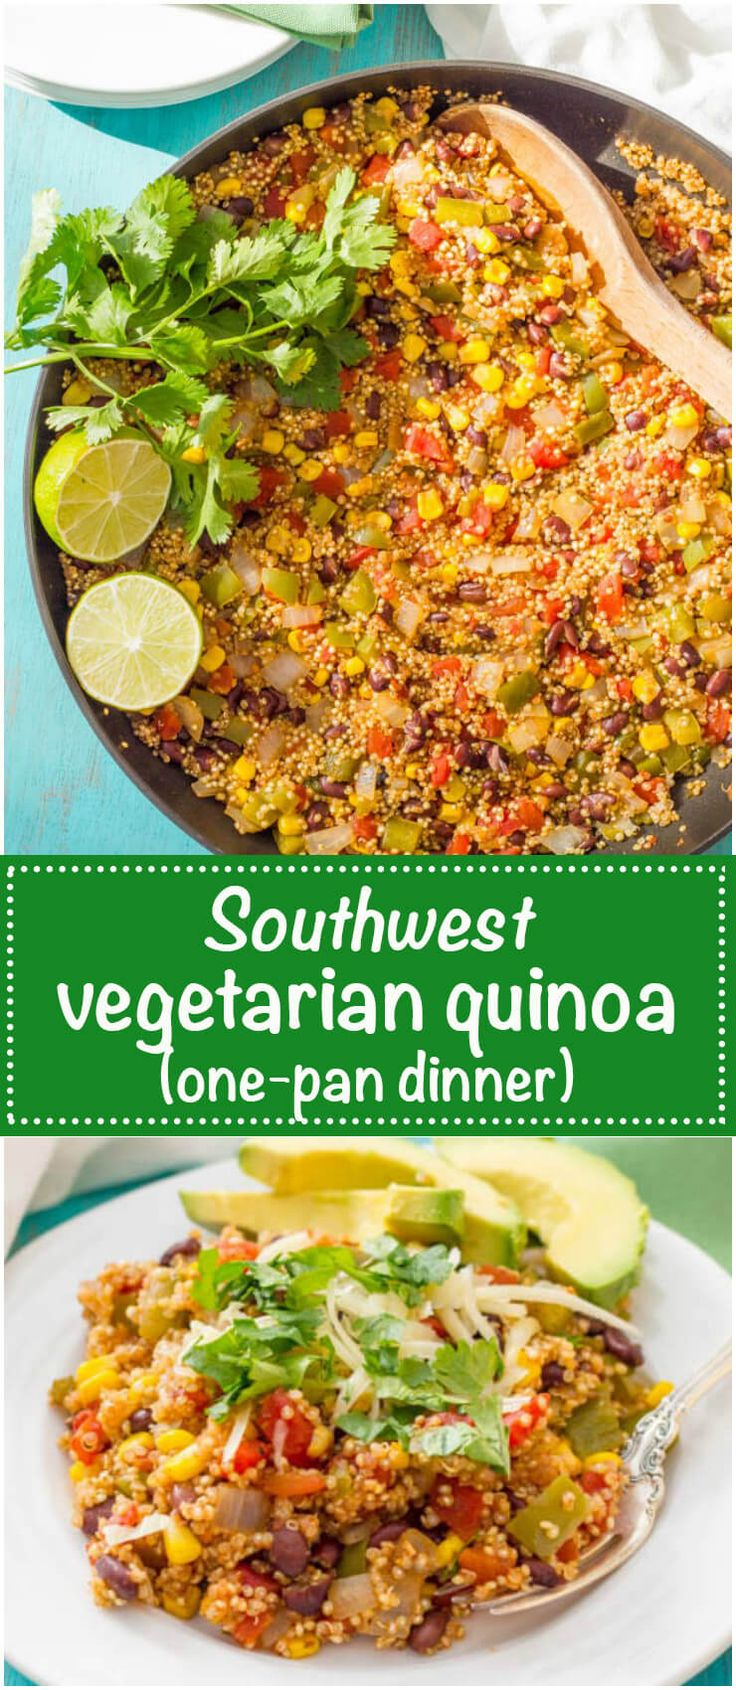 Southwest vegetarian quinoa skillet is a quick and easy one-pan dinner recipe that's healthy but very filling and perfect for meatless Monday! | www.familyfoodonthetable.com